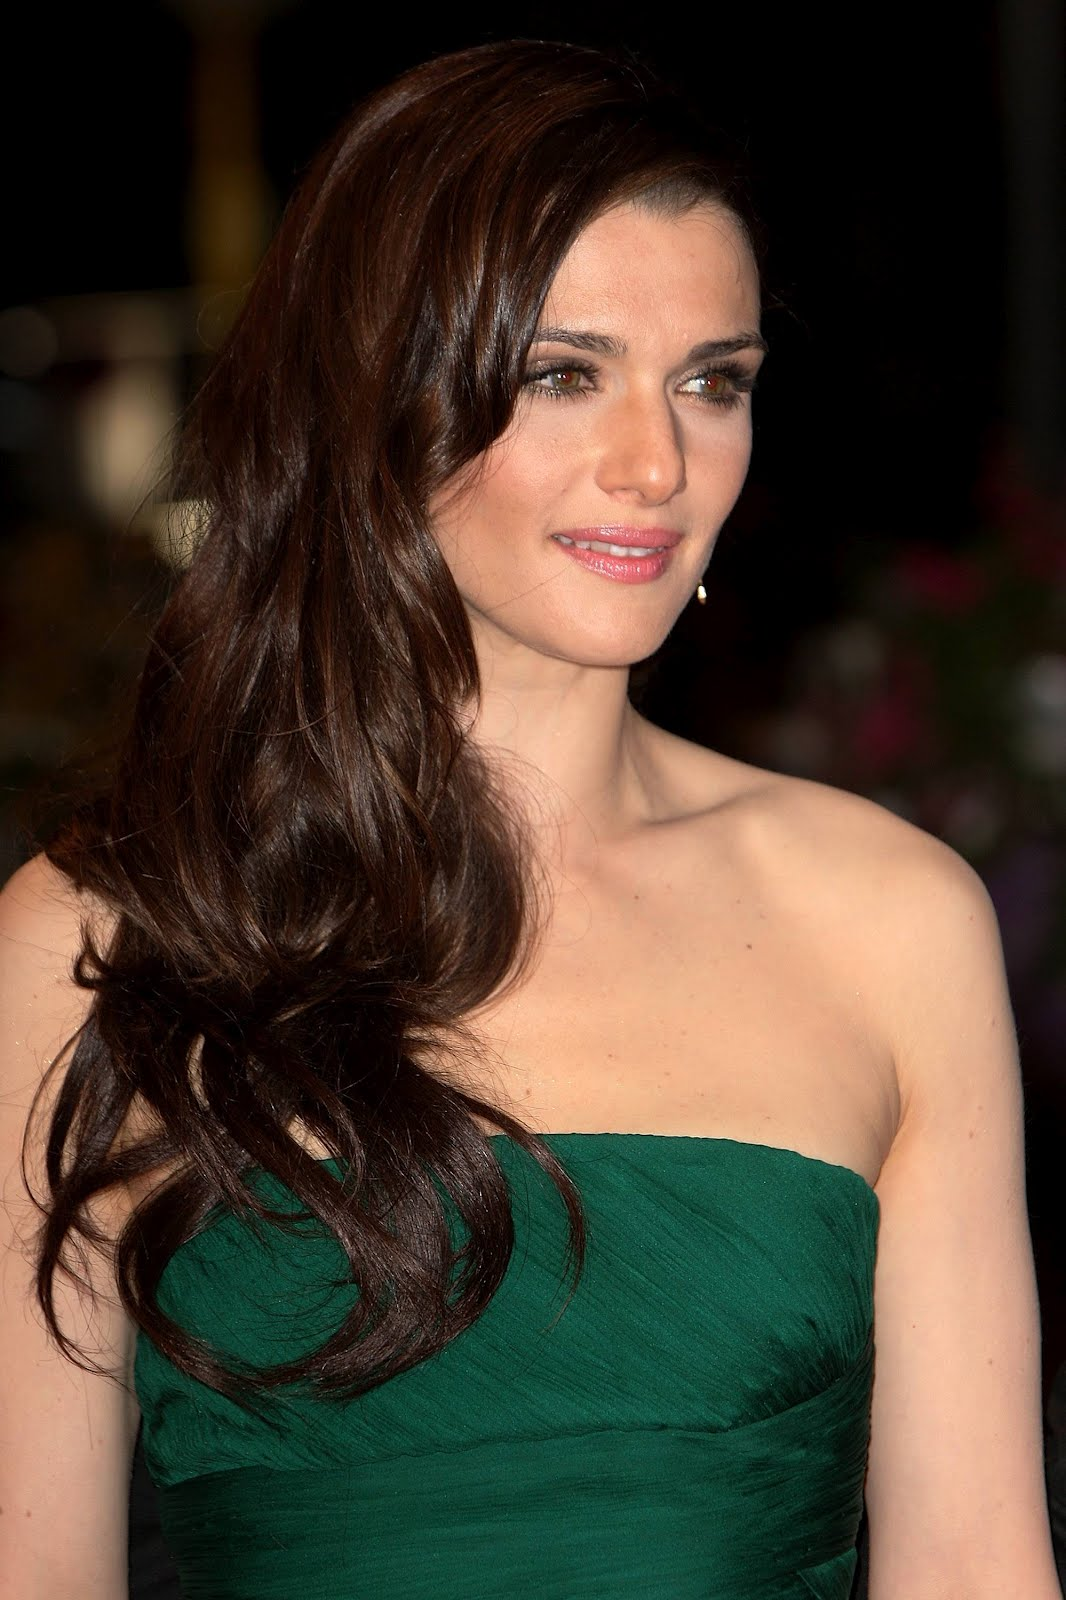 Porm celebrity hairstyles - Layers Of Medium And Long Term Side And Rear Of The Waves Rise And The Whole Movement And Softness The Long Wavy Hairstyle Look Easy To